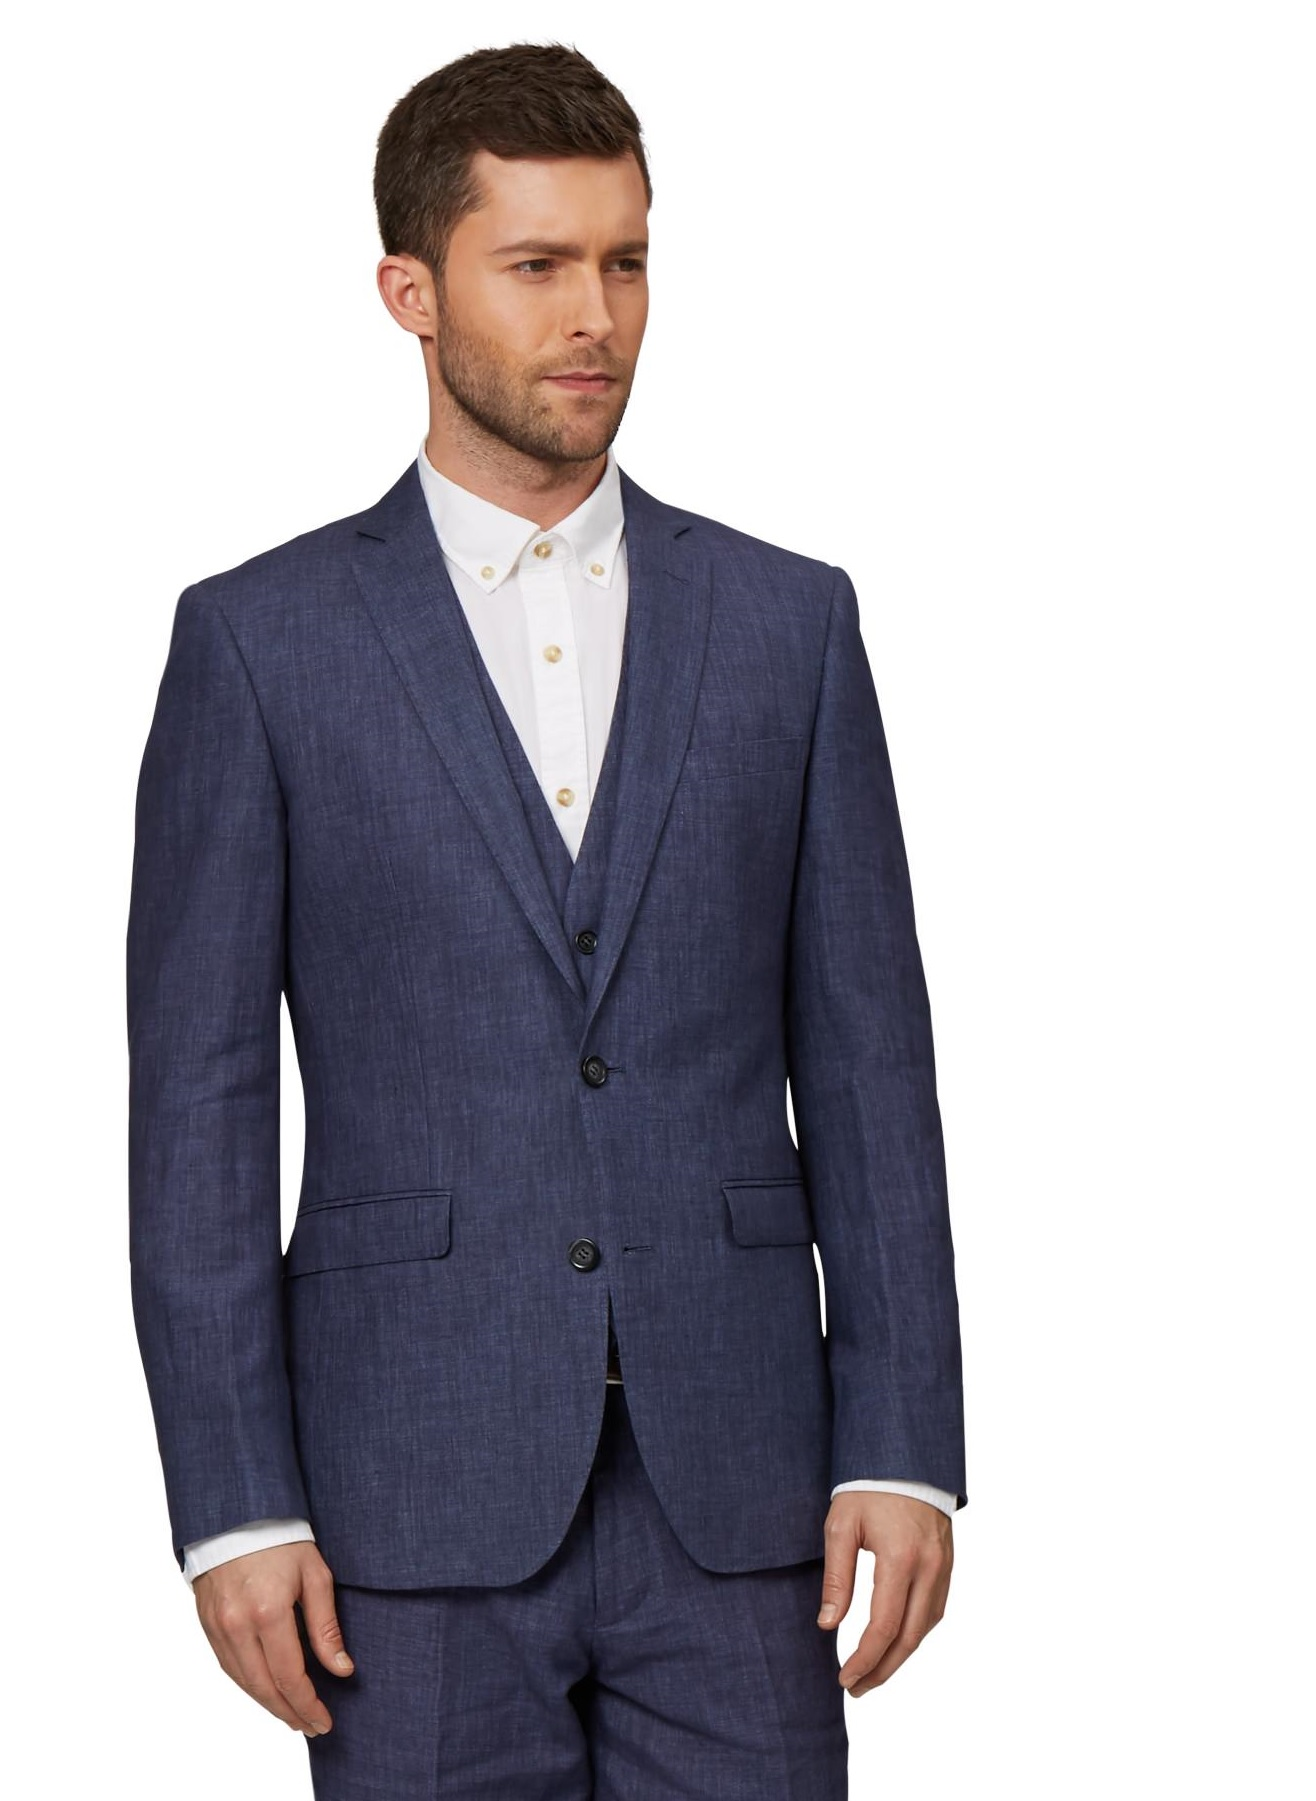 Moss 1851 Mens Indigo Blue Suit Jacket Tailored Fit Two Button ...